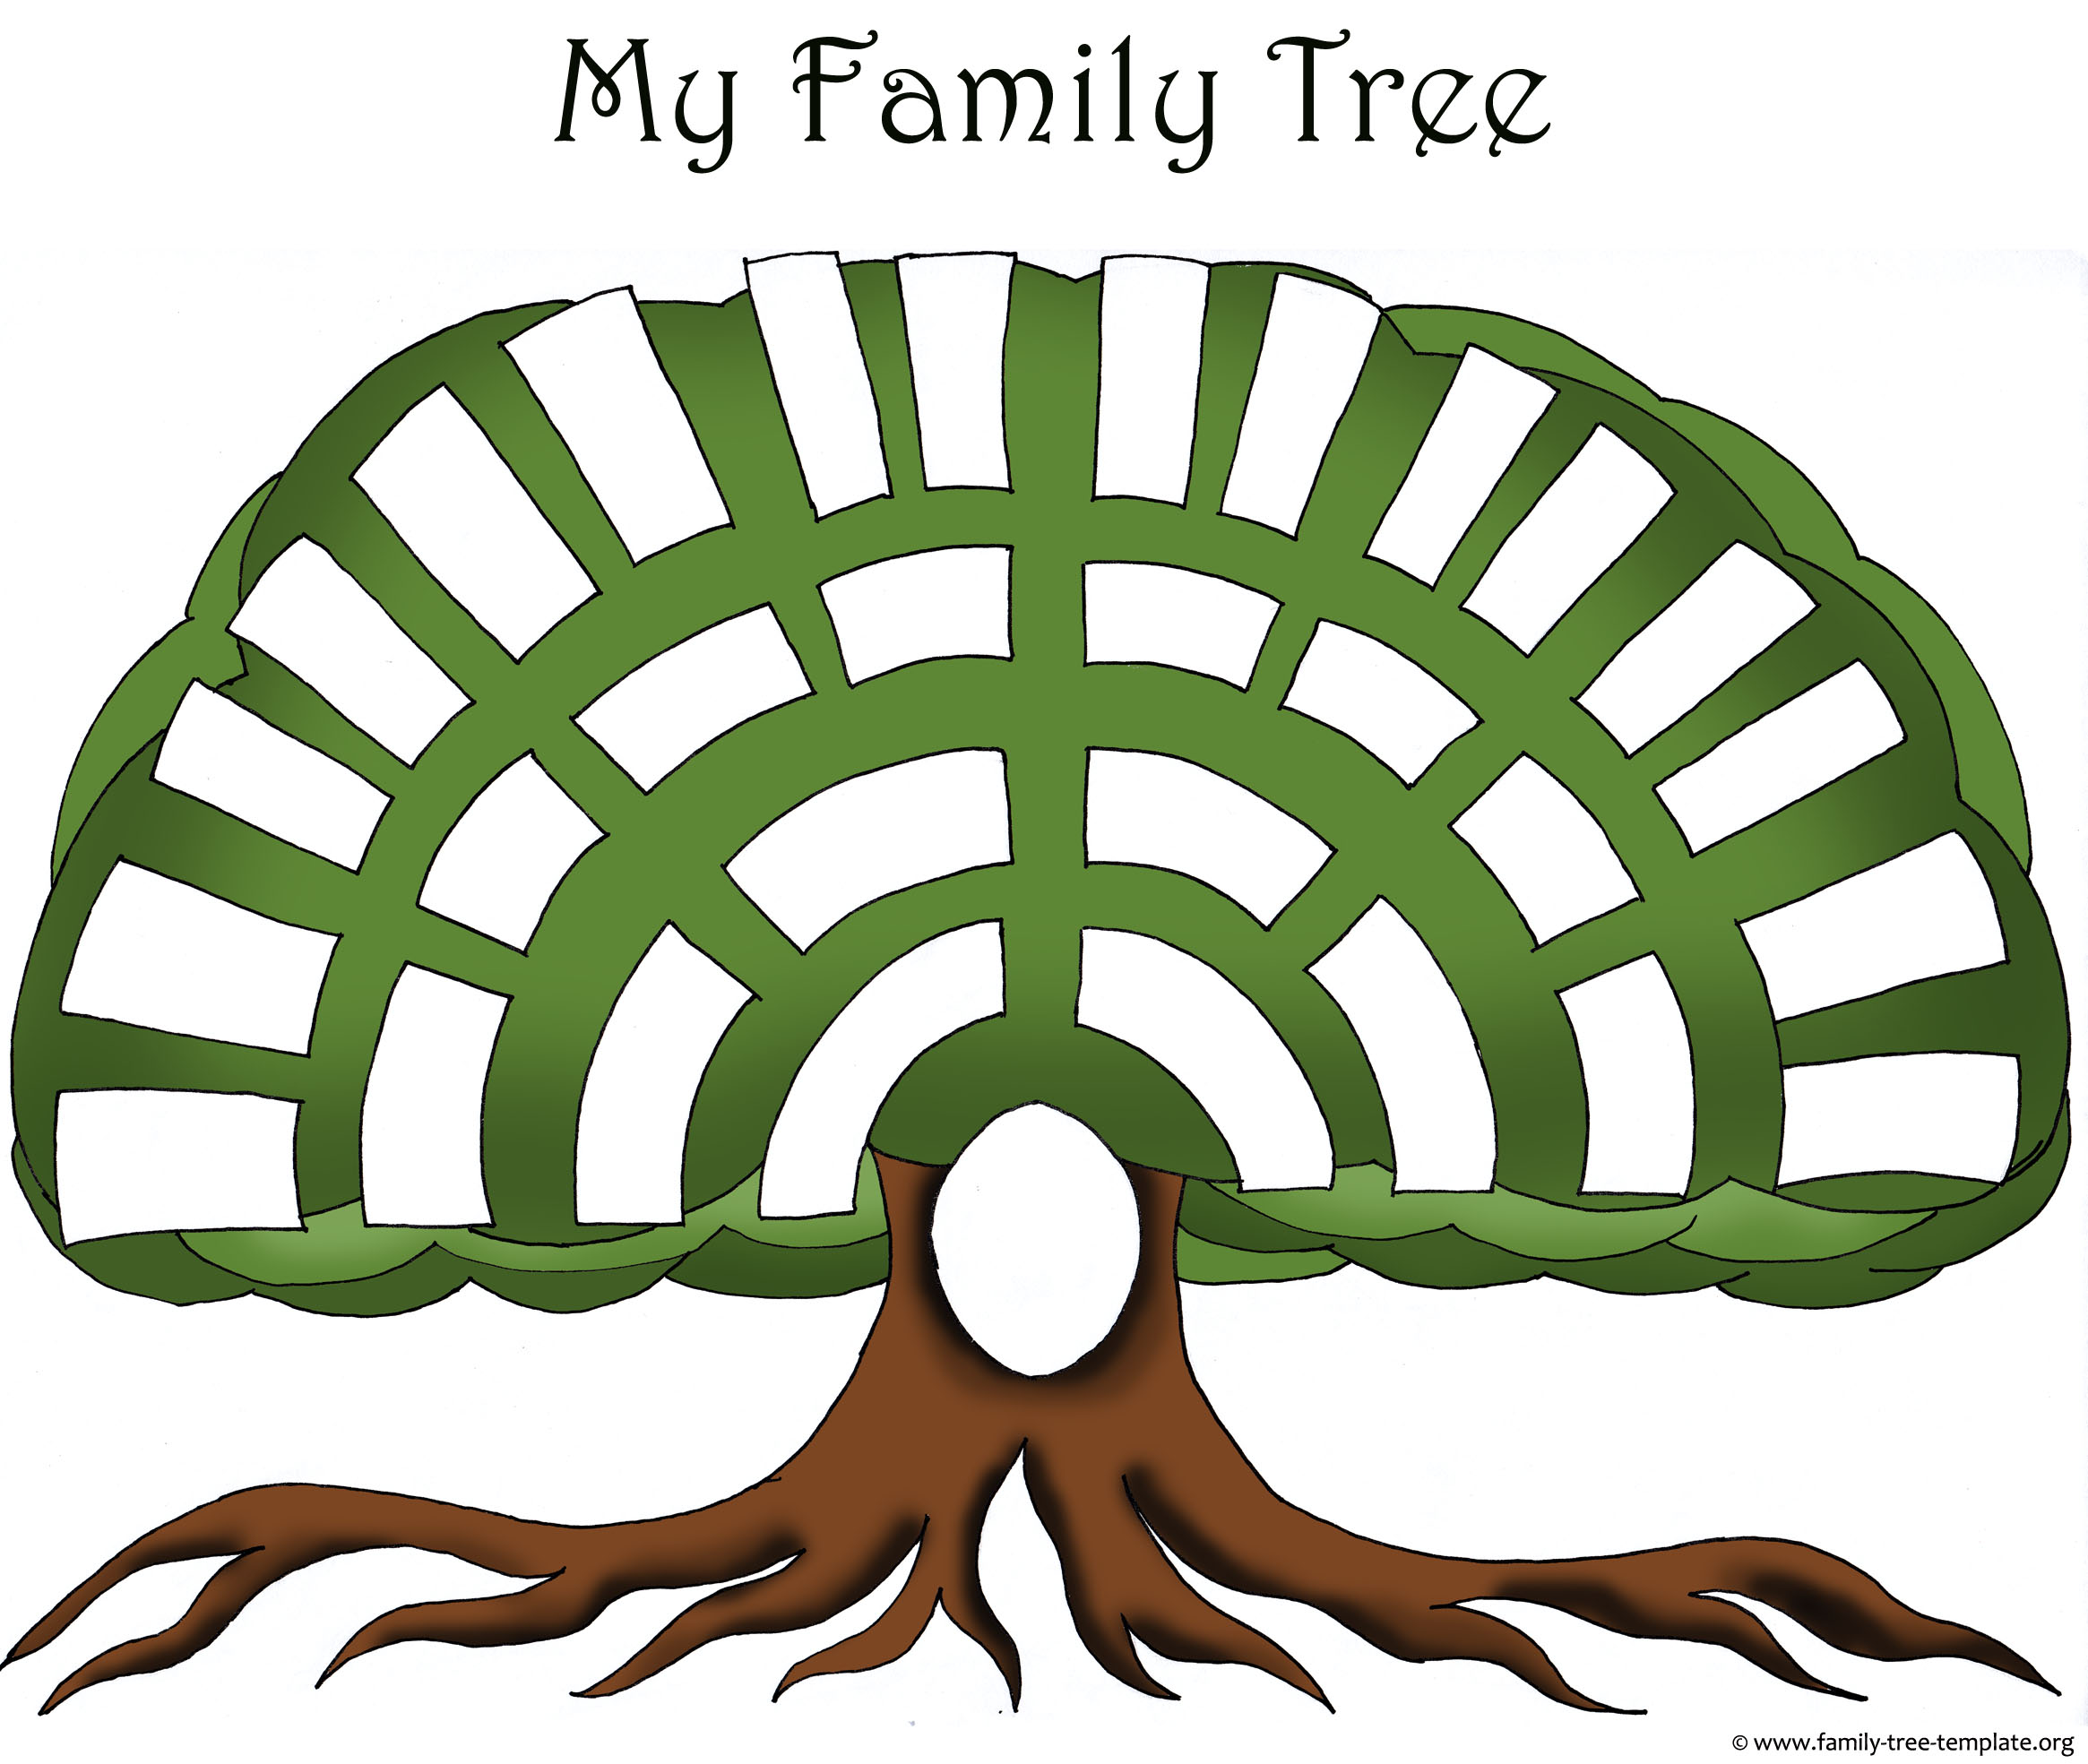 genealogy templates for family trees - family tree templates genealogy clipart for your